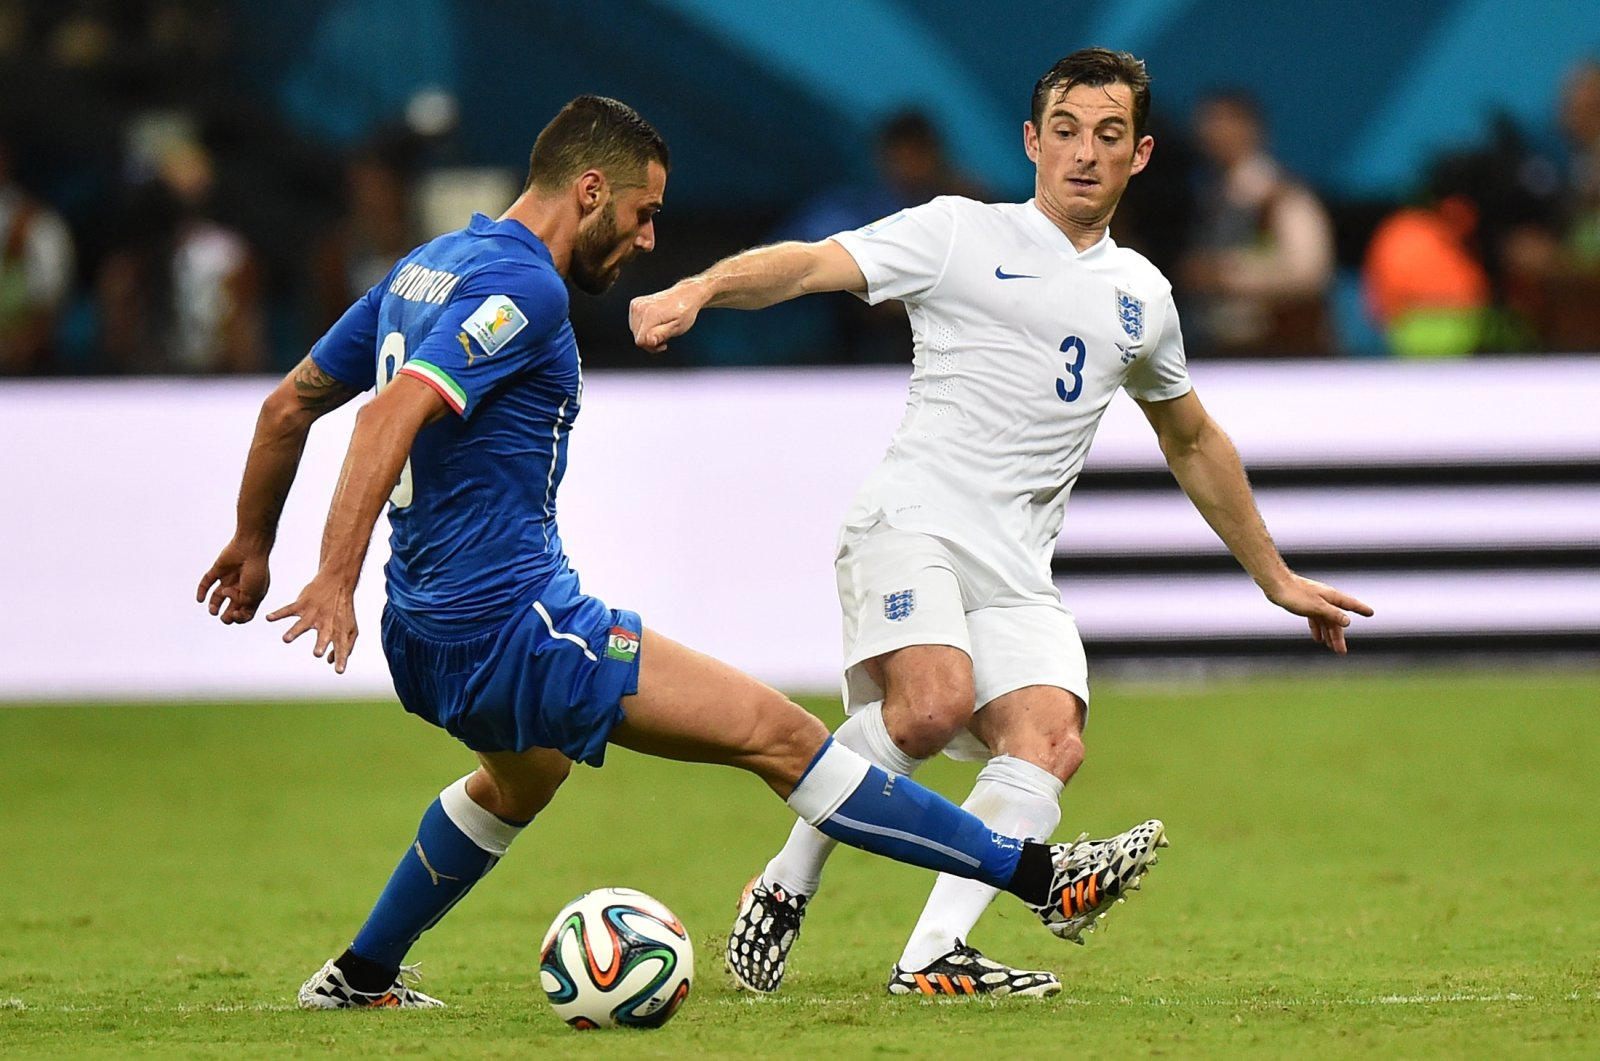 England defender Leighton Baines (R) vies with Italy's midfielder Antonio Candreva during their 2014 FIFA World Cup Group D match at the Amazonia Arena in Manaus, Brazil, June 14, 2014.       (AFP Photo)